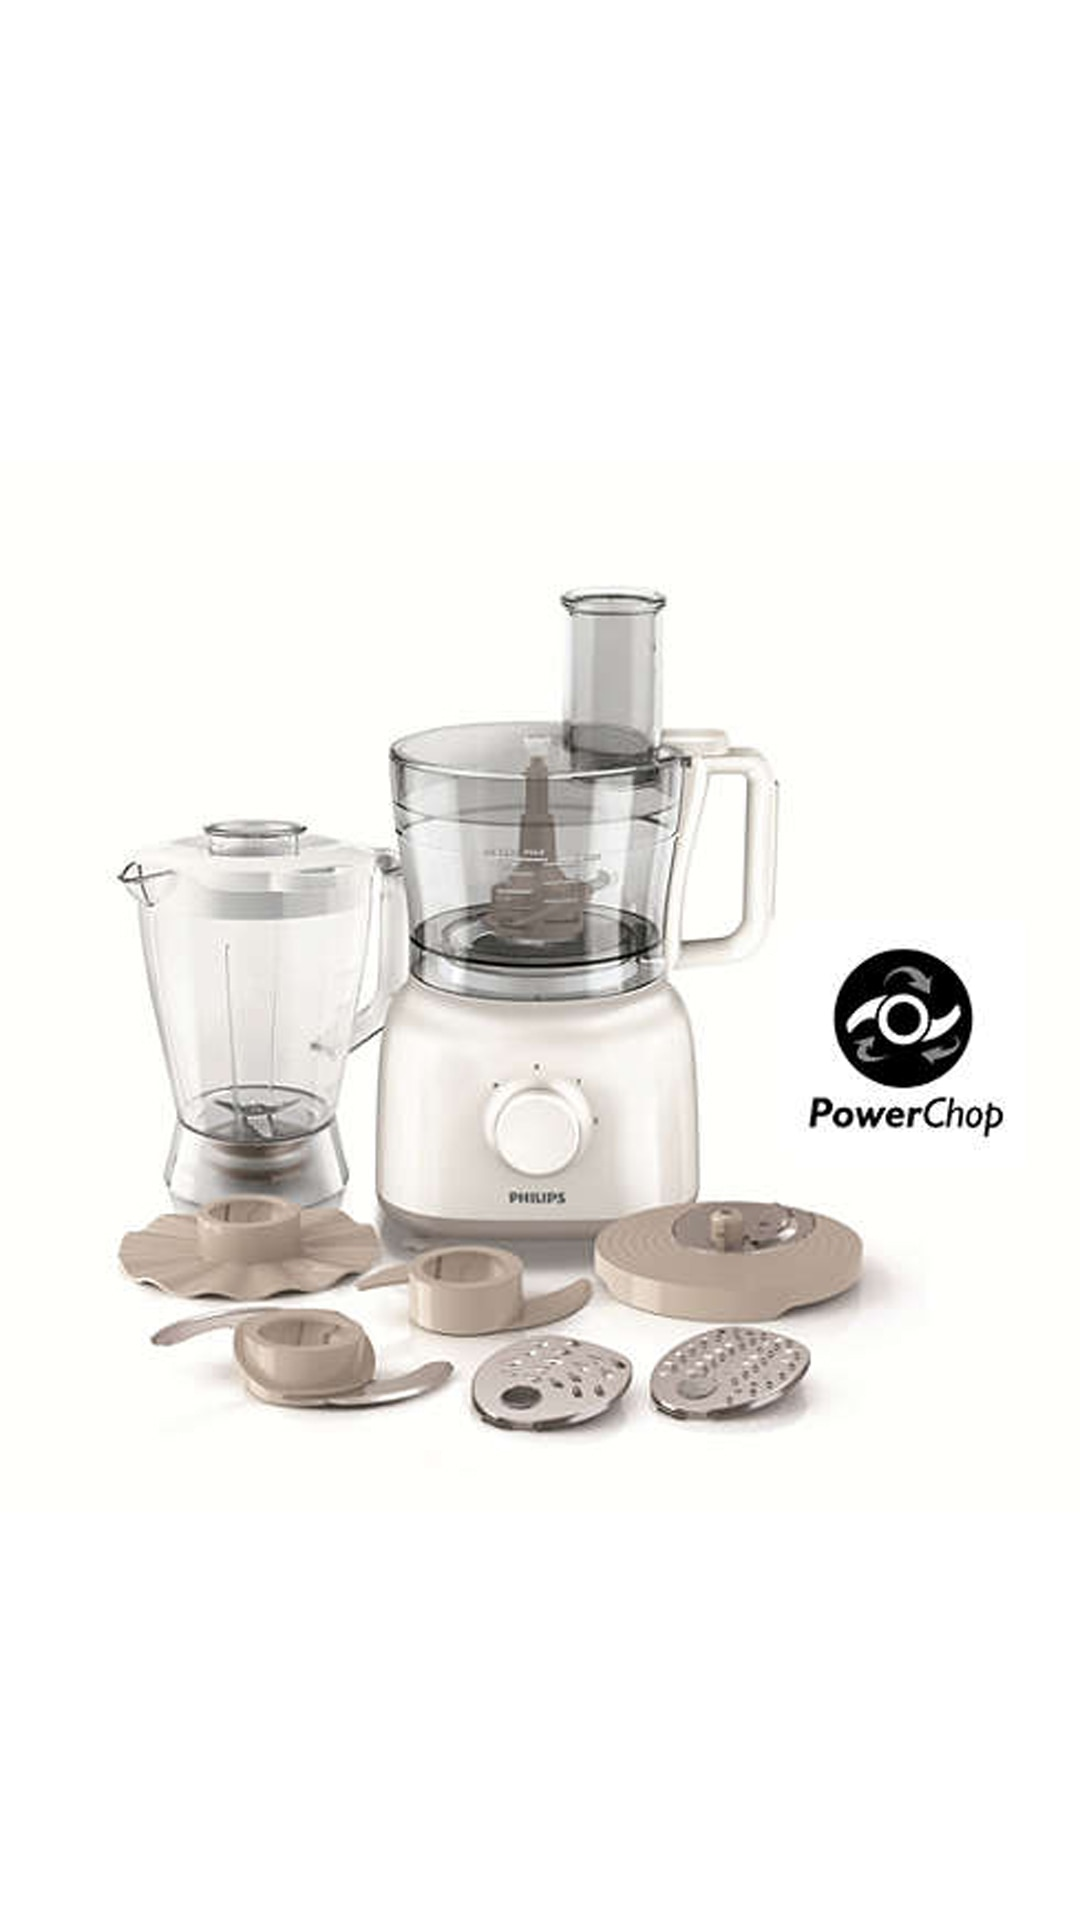 Philips HR 7628/00 650 W Food Processor (White)